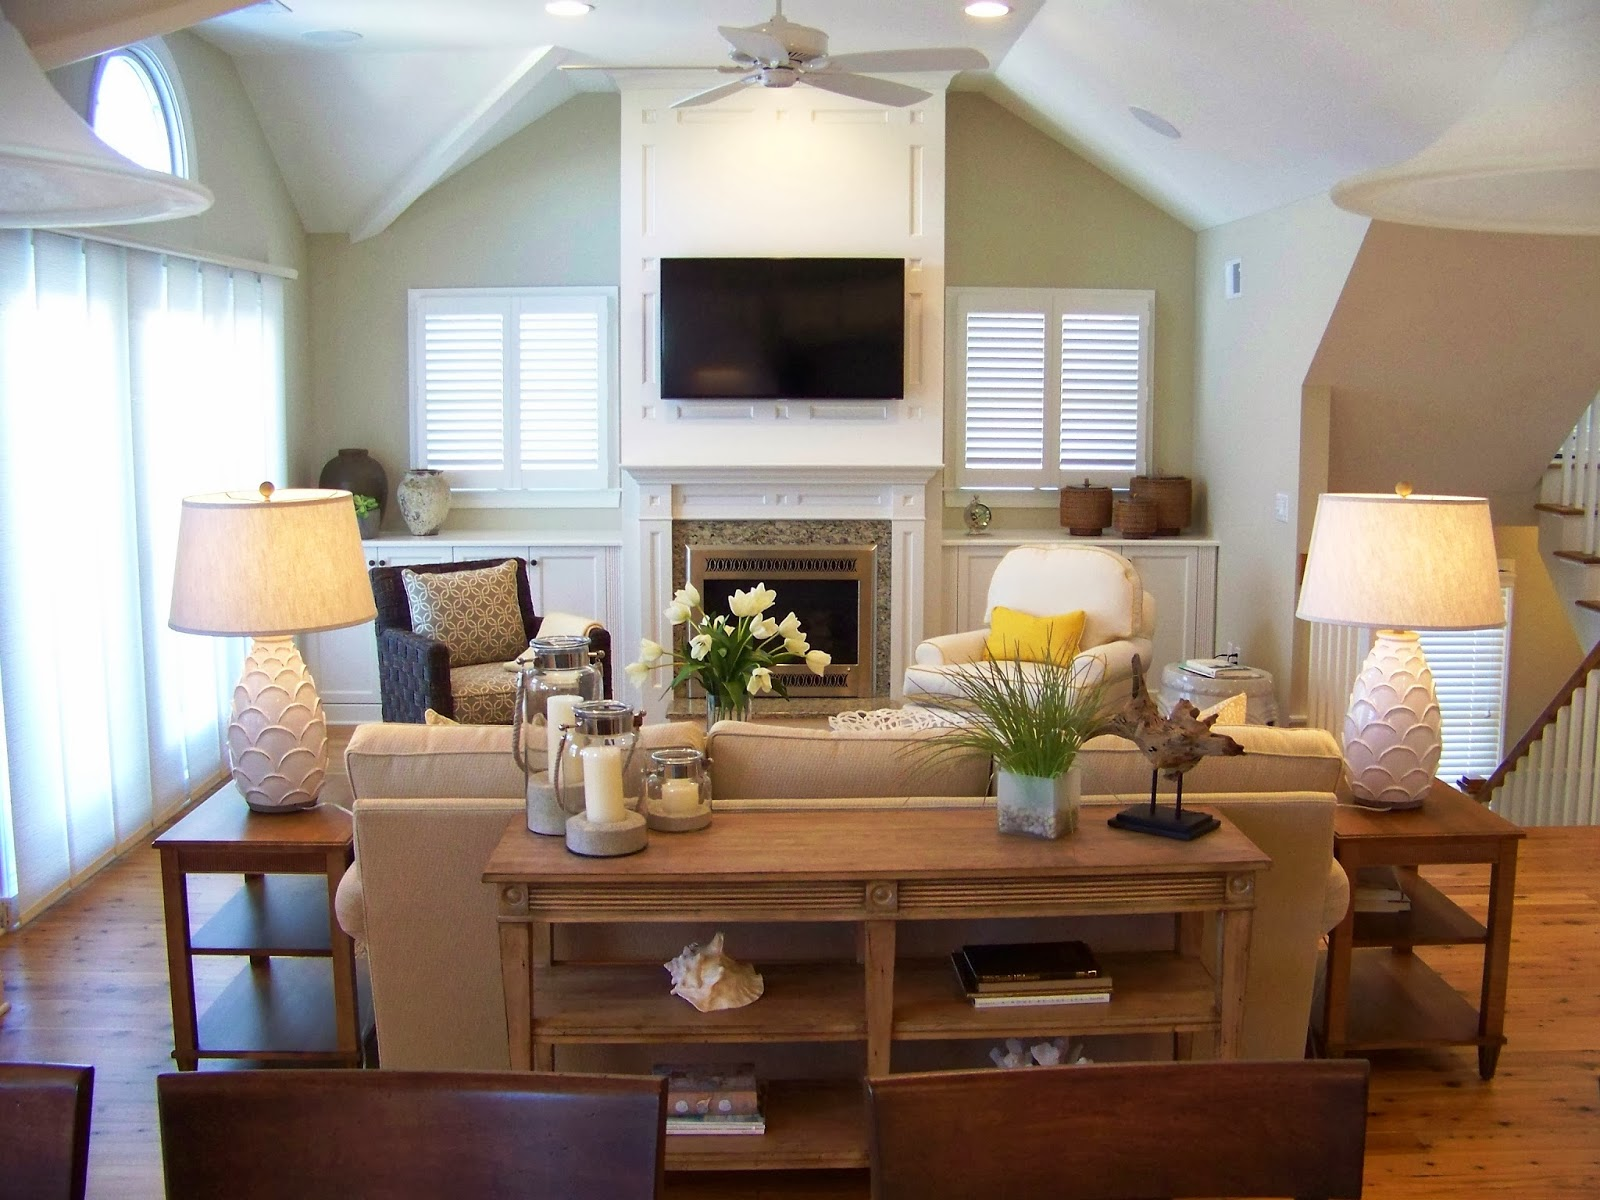 Color changes everything beach house for Living room with fireplace decorating ideas